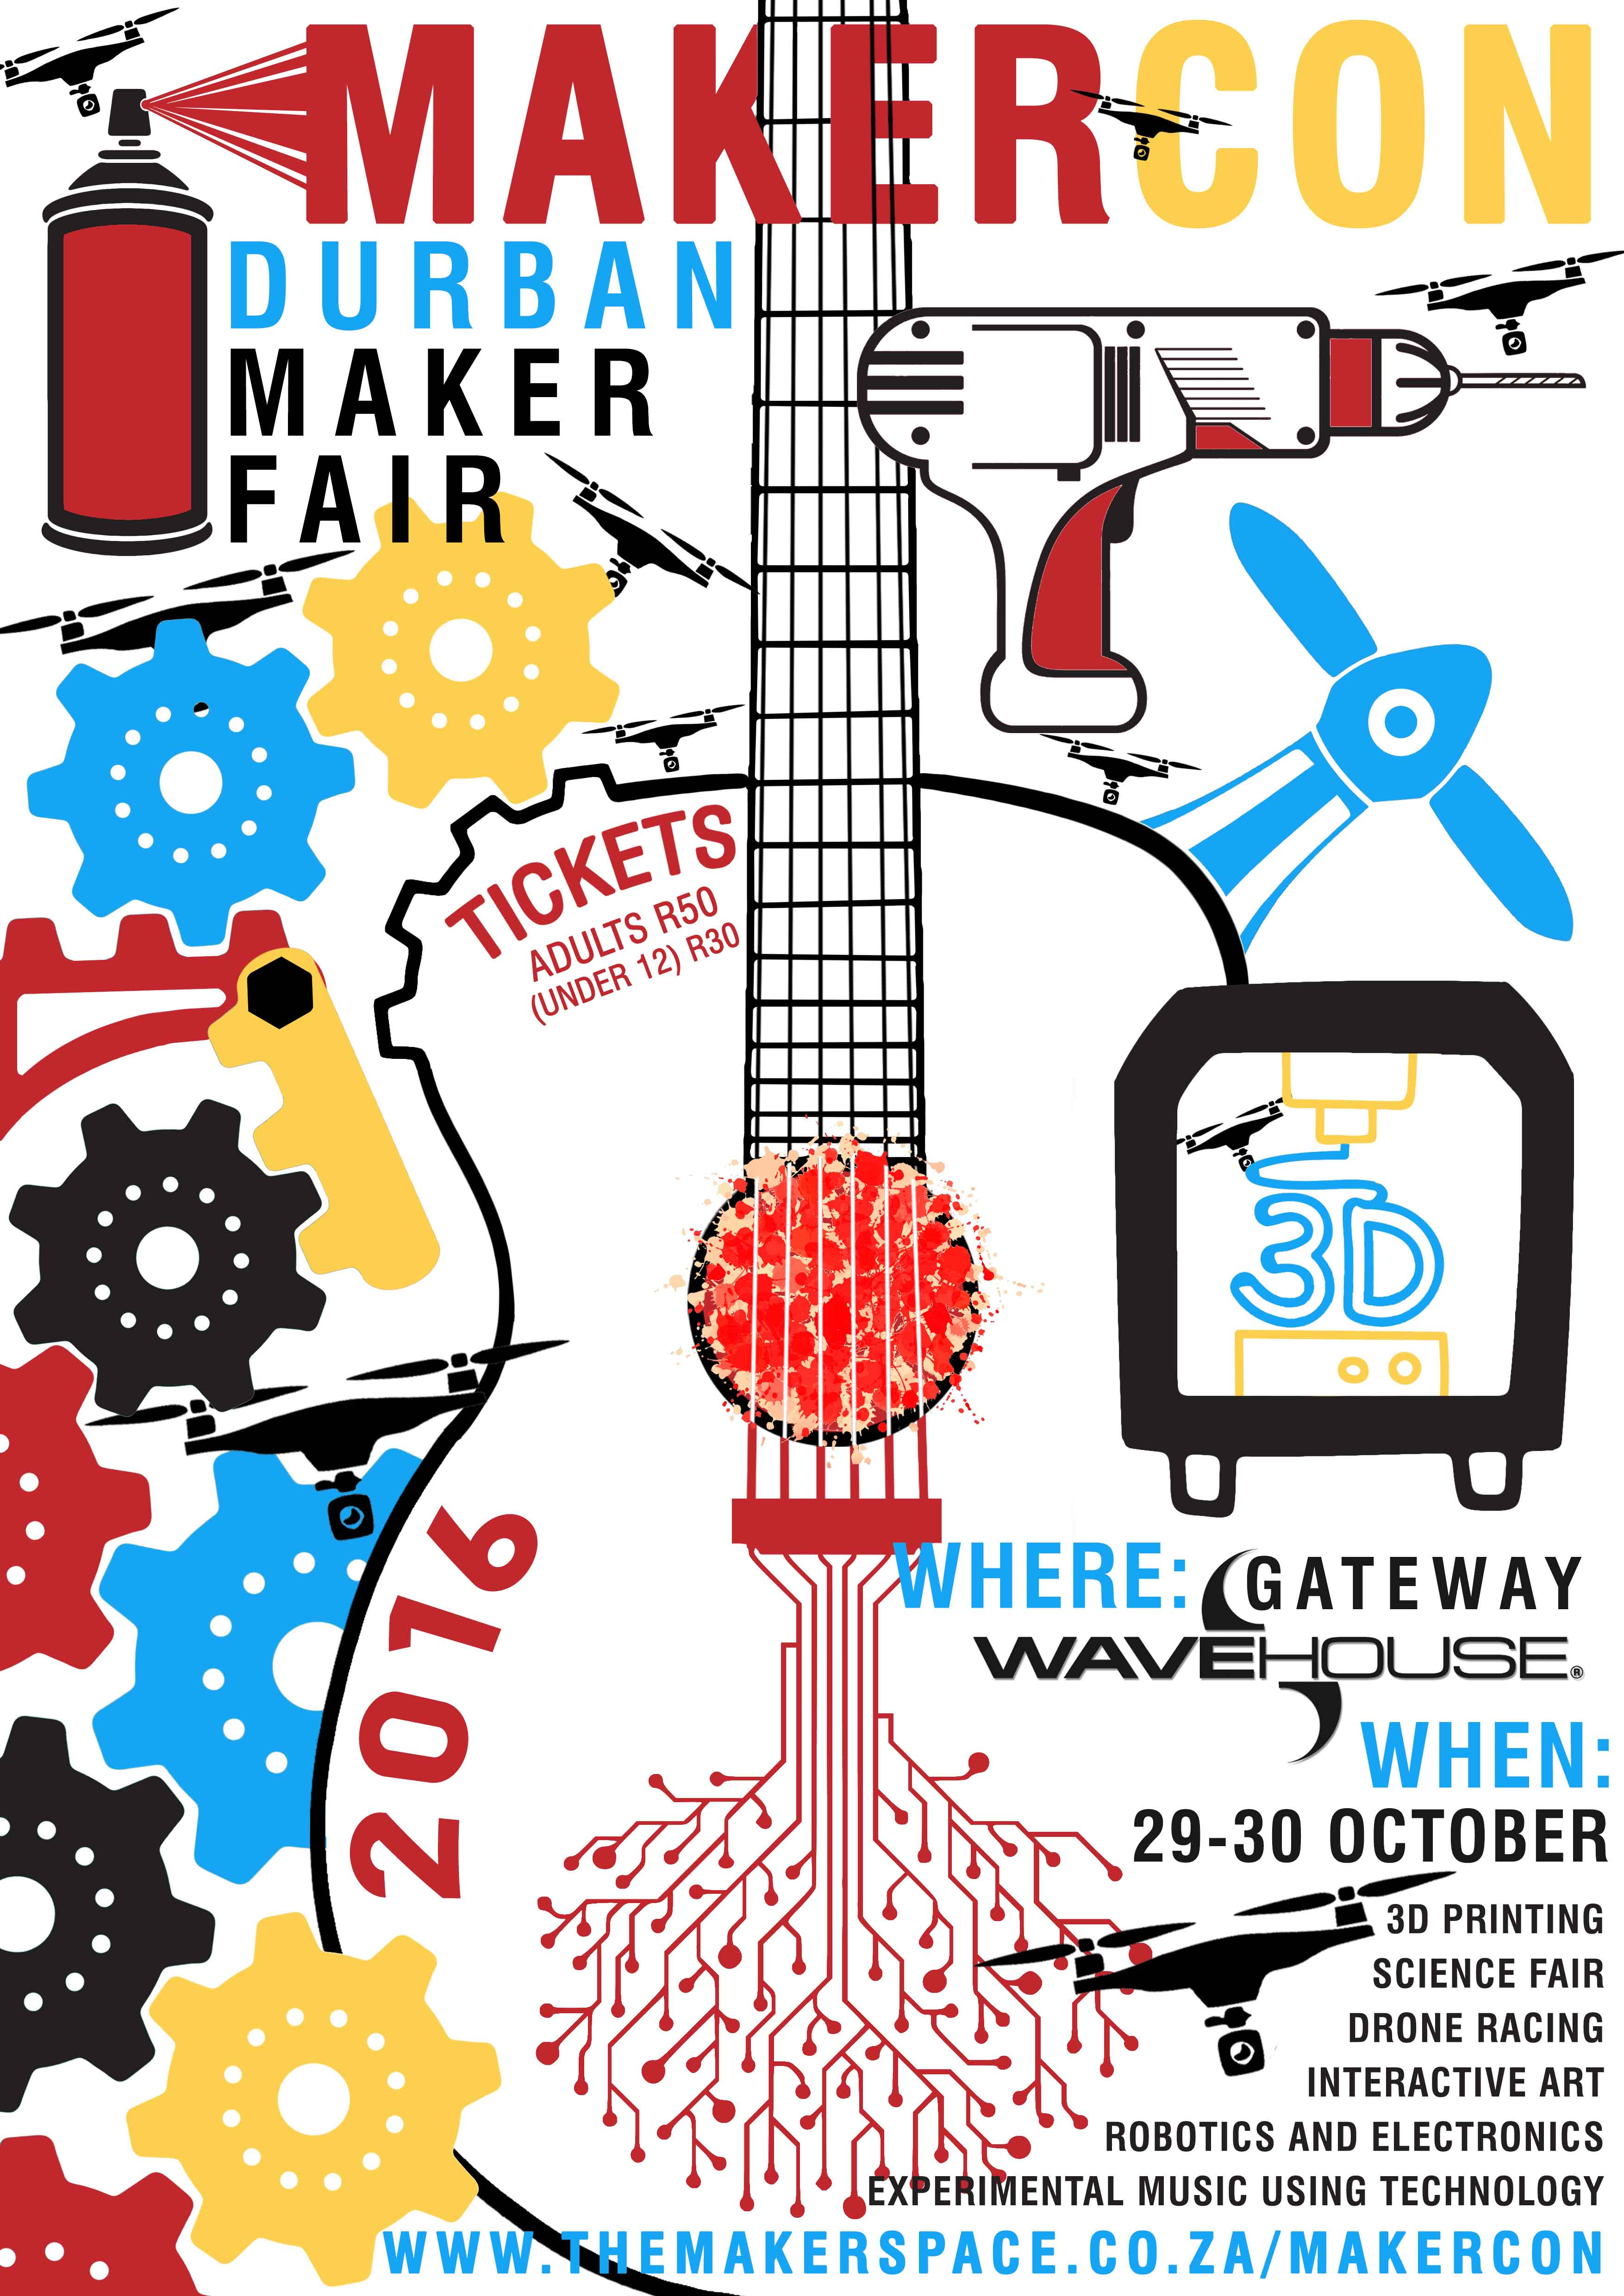 MakerCon 2016 The MakerSpace – Ticket Maker